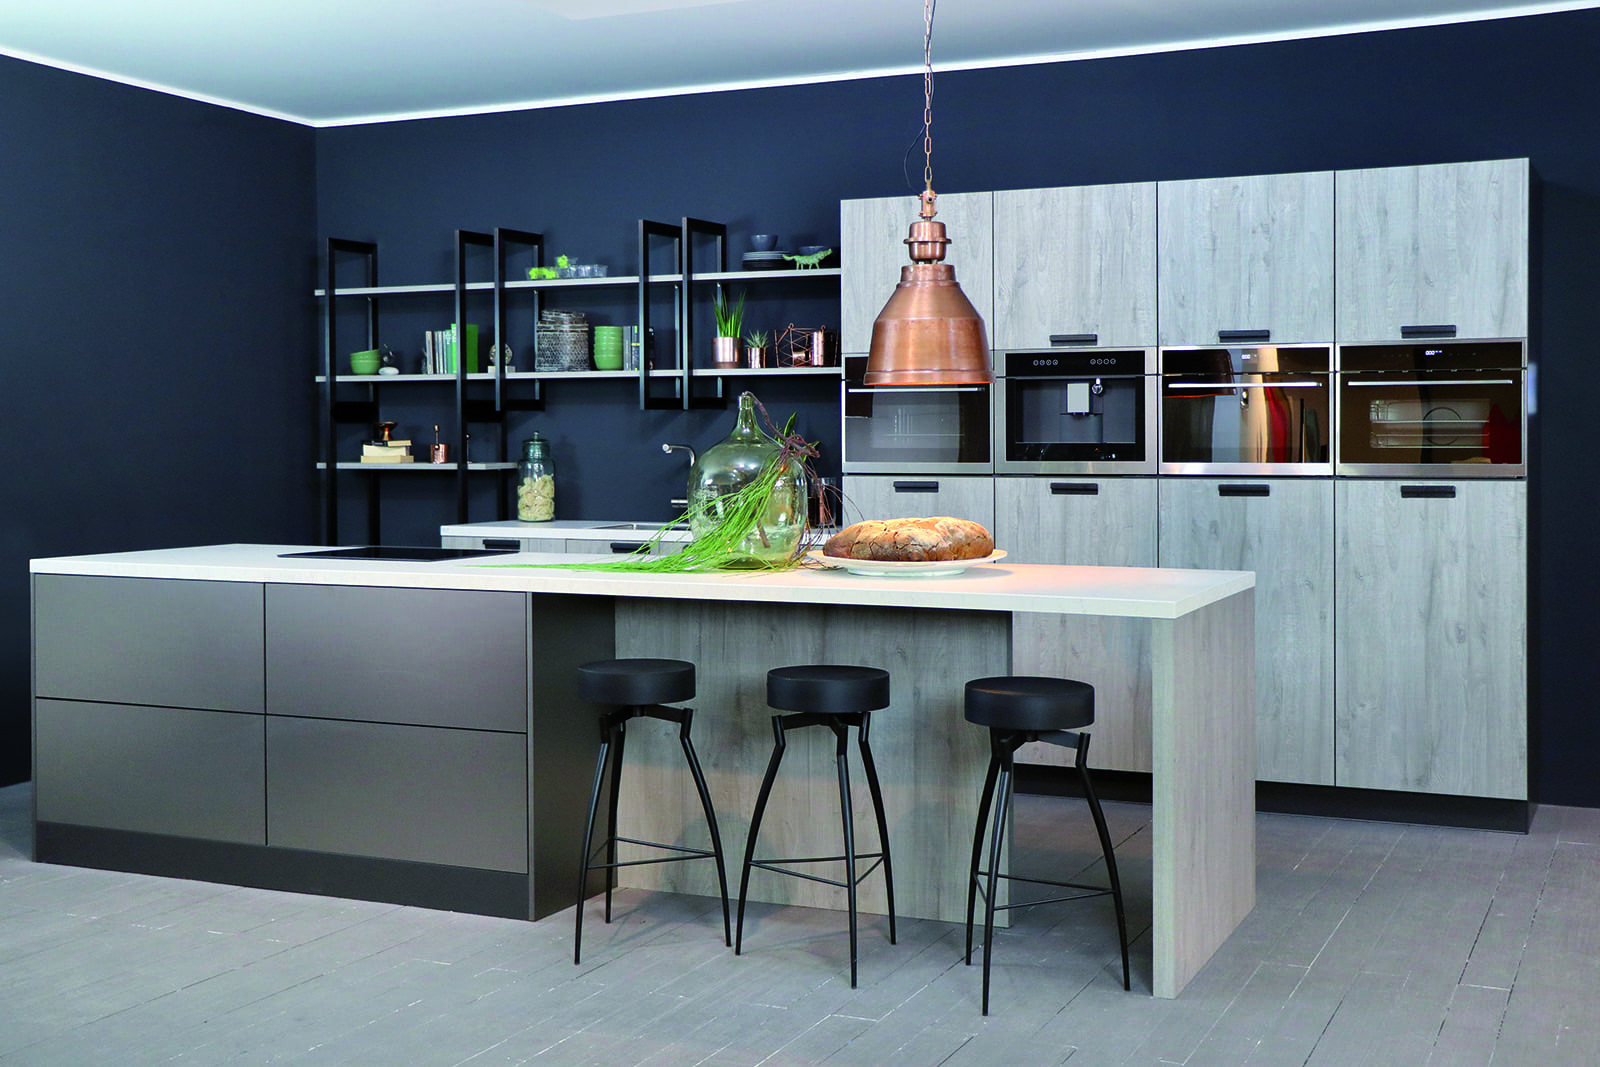 Rotpunk Metallic Look Pearl and Sherwood Mahattan Wood Island Kitchen | Swans of Gravesend